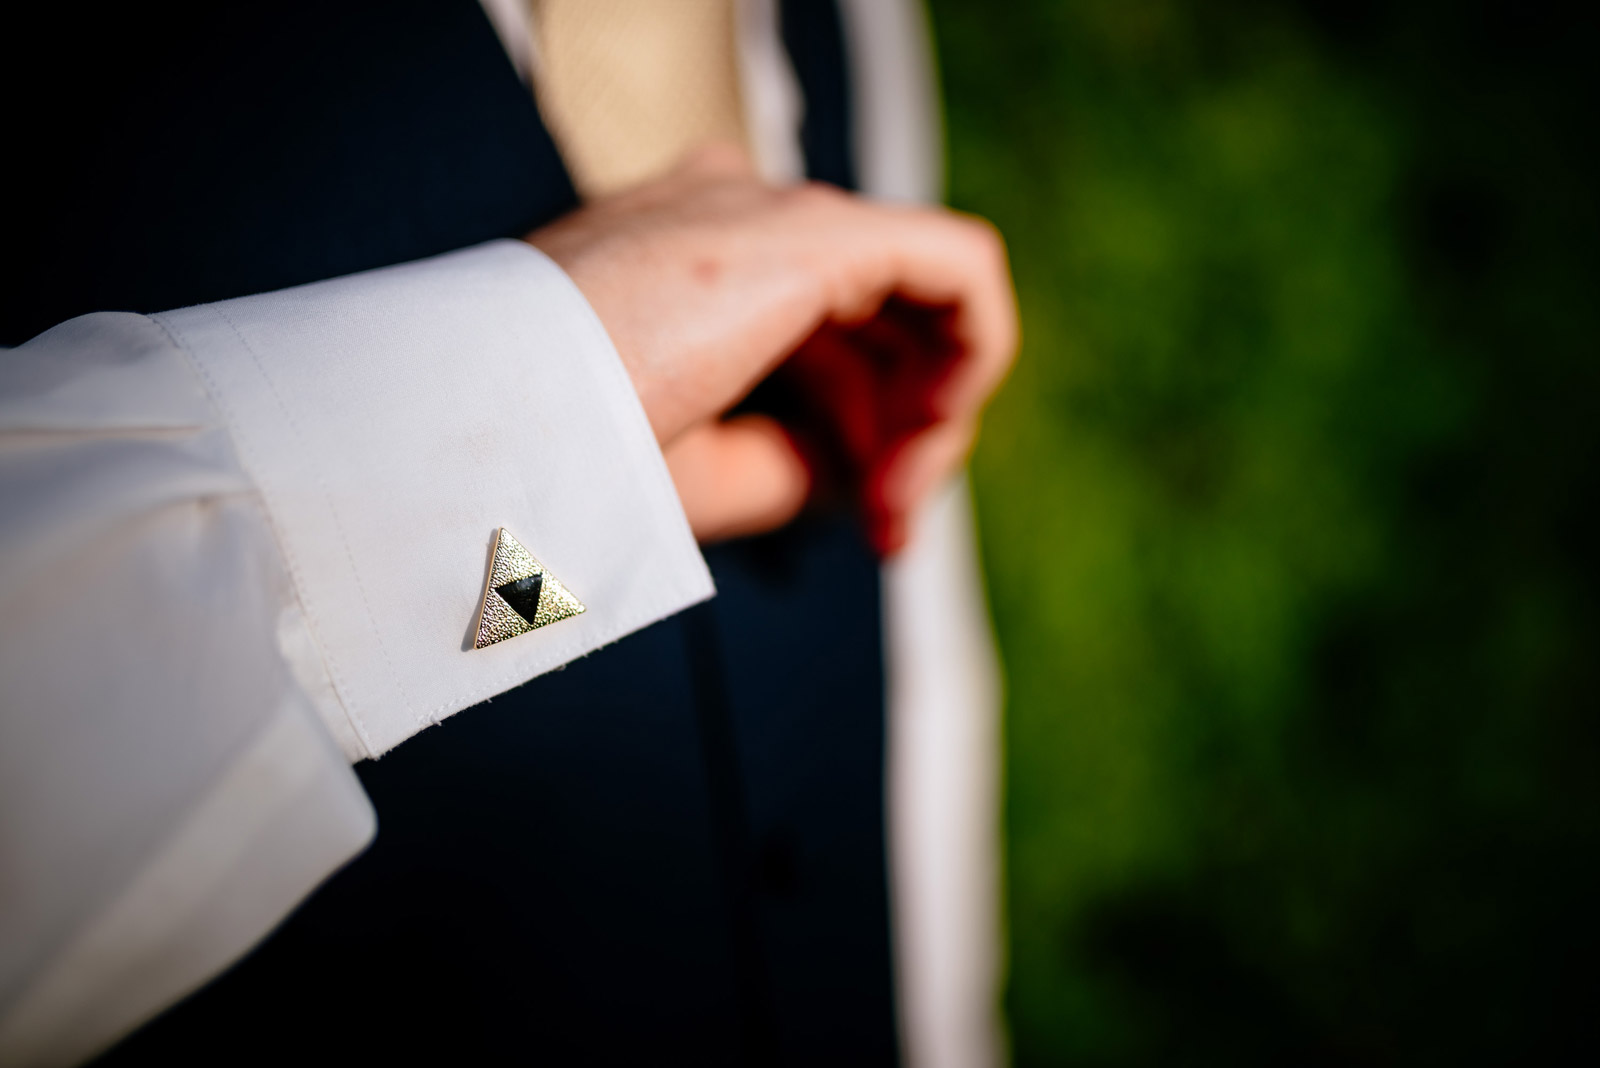 legend of zelda cufflinks wedding